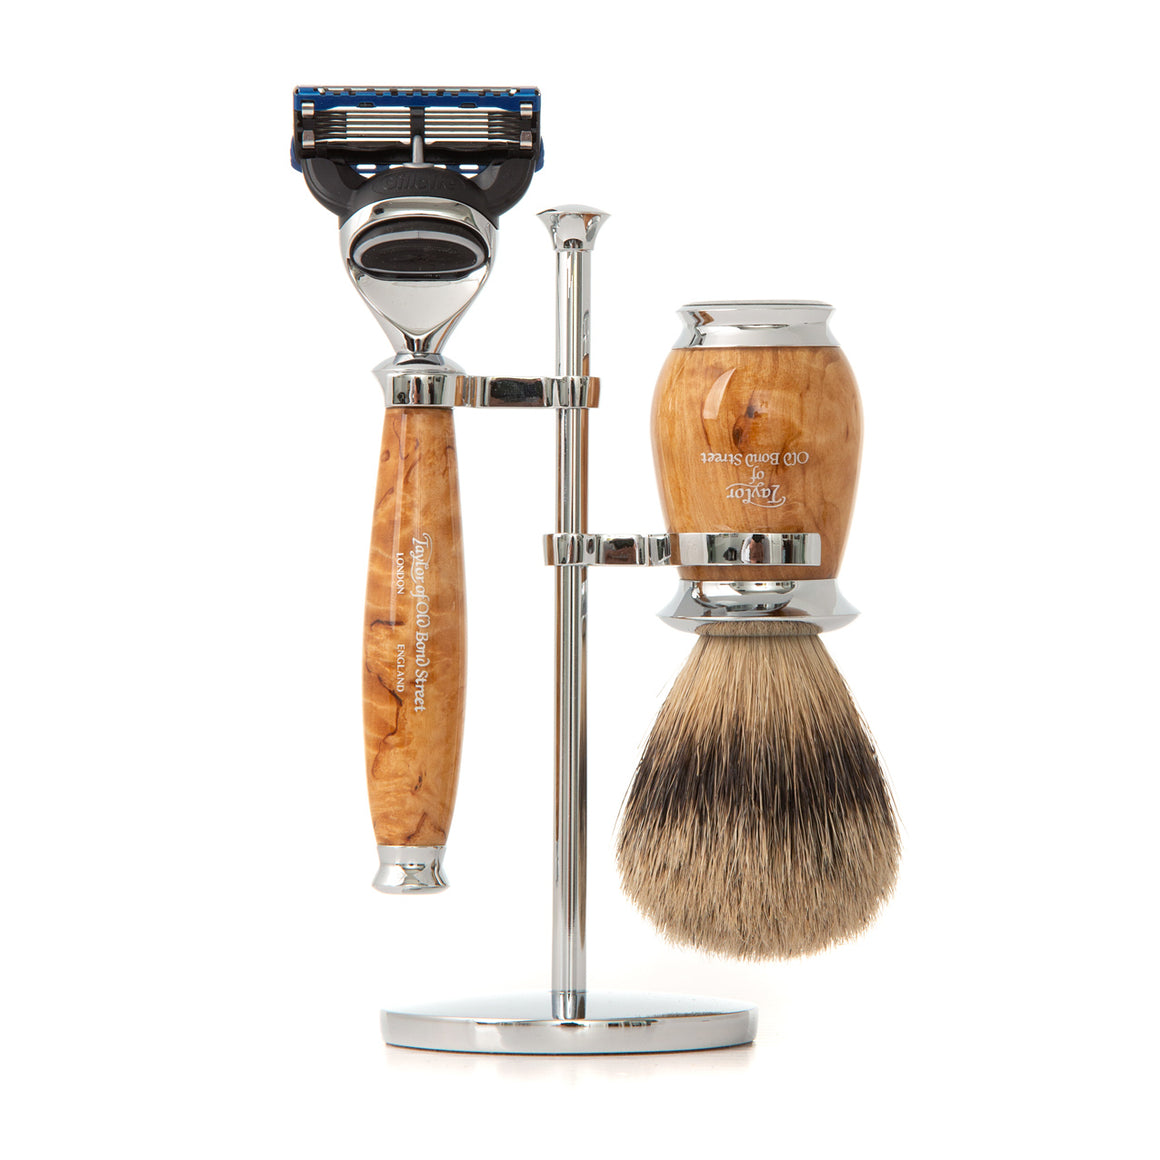 Super Fusion Shaving Set in Birch Wood